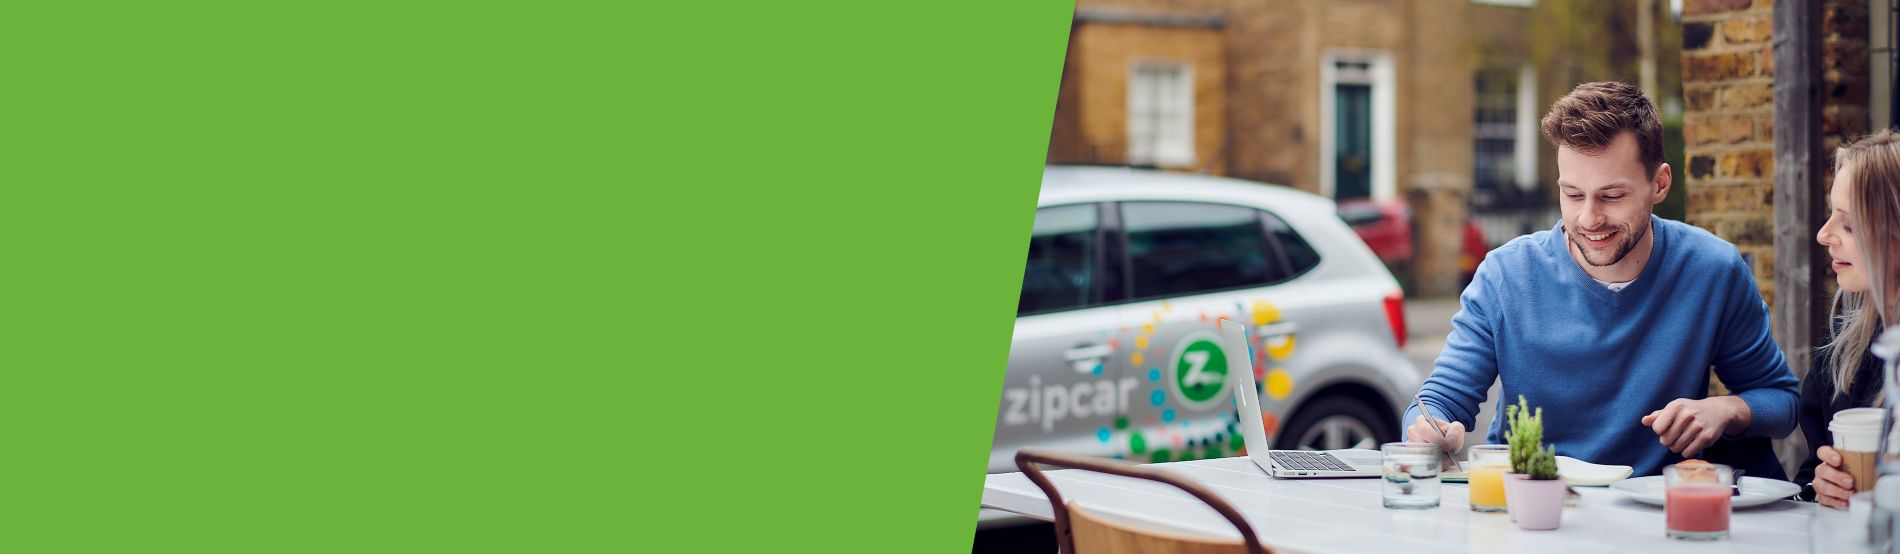 zipcar for business meeting